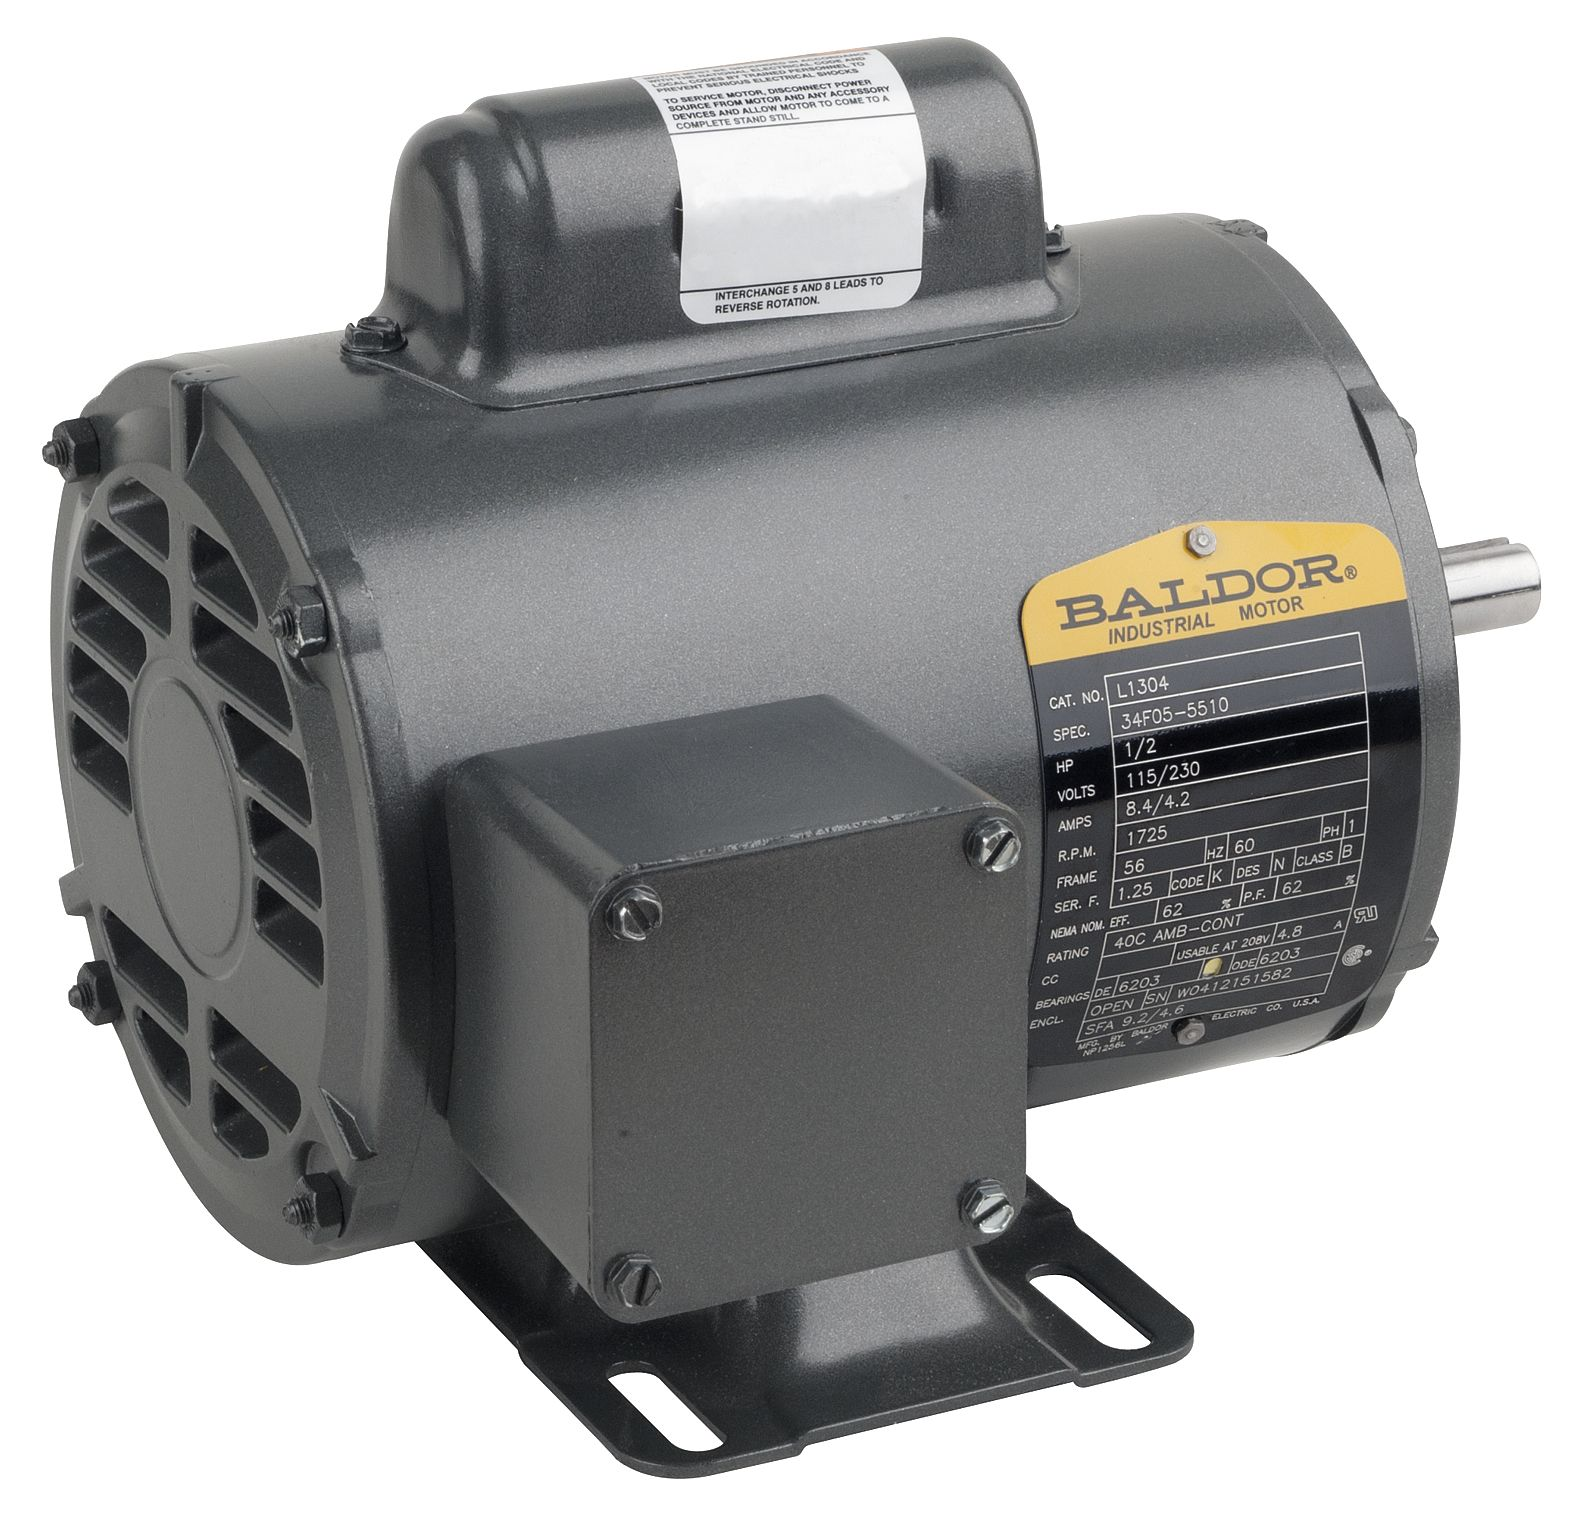 L1405t baldor for Baldor industrial motor parts